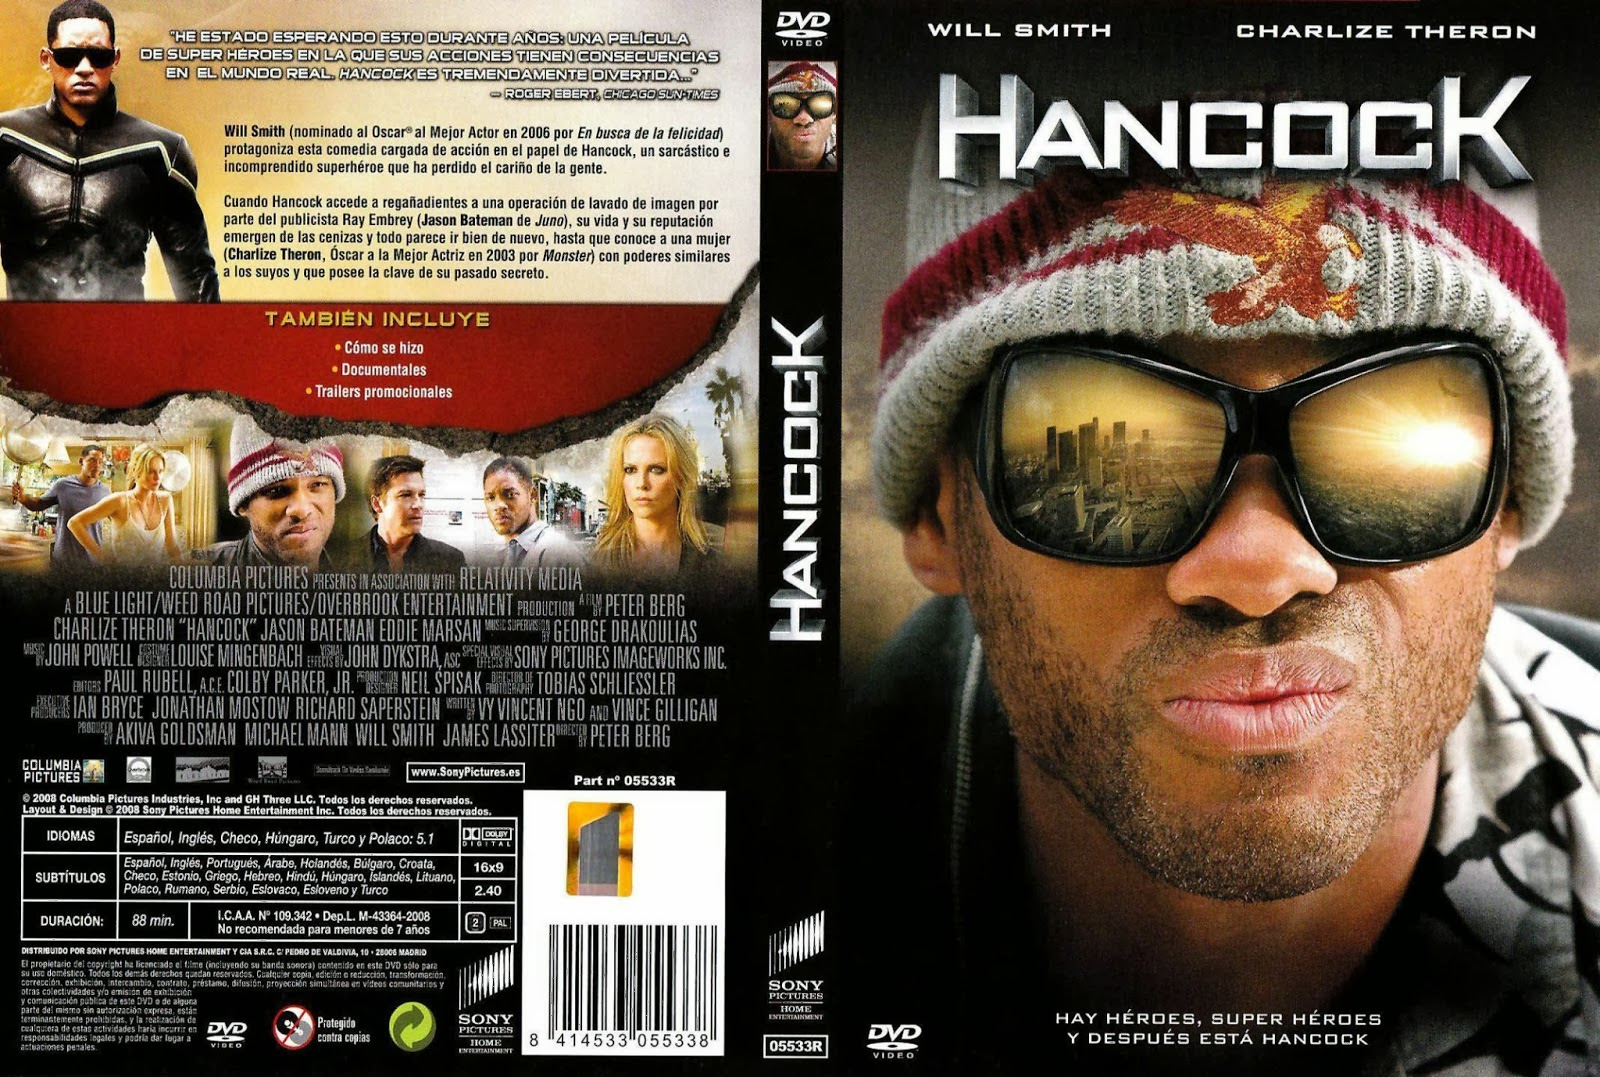 Hancock (Version Extendida) DVD